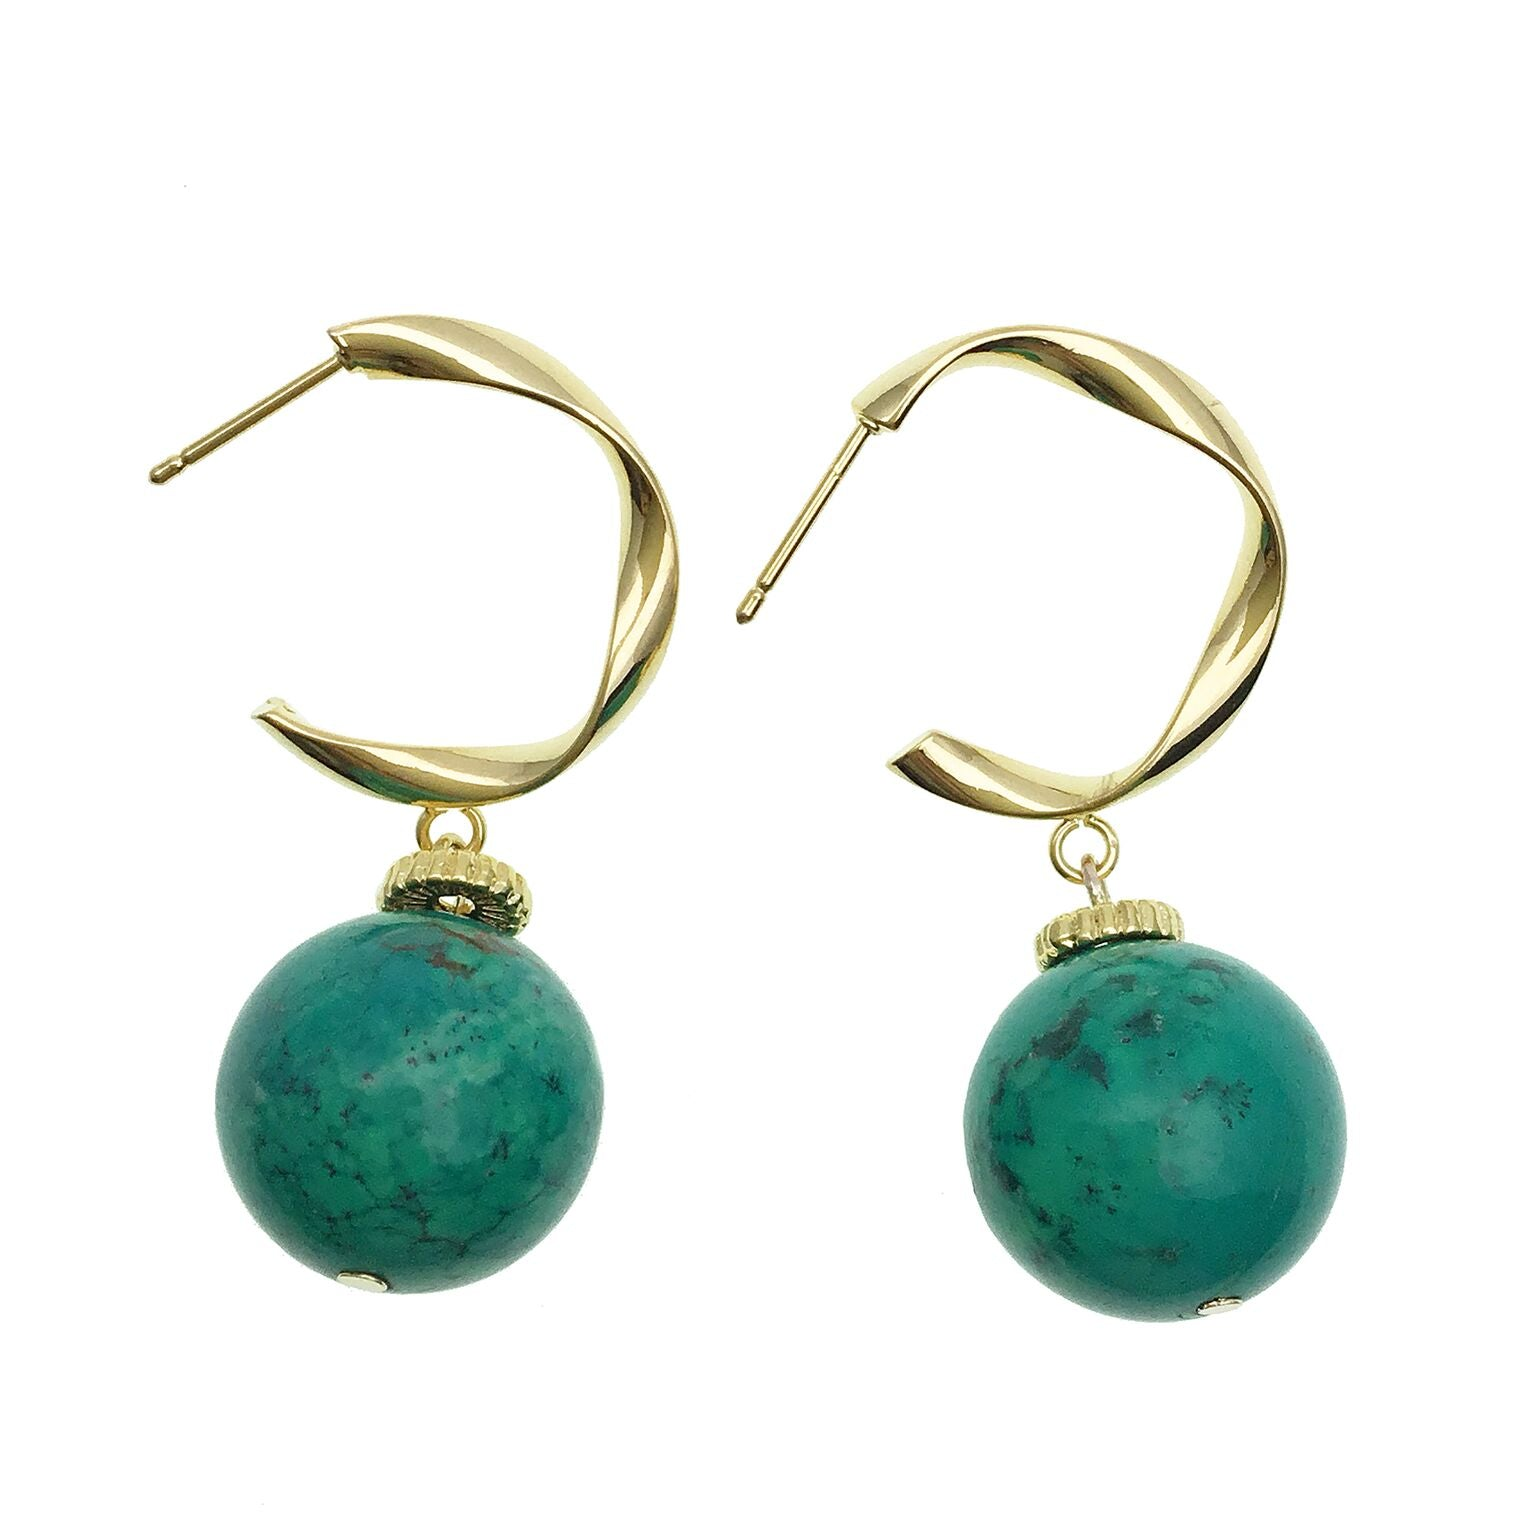 Turquoise and Gold Hoop Earrings - Shopidpearl